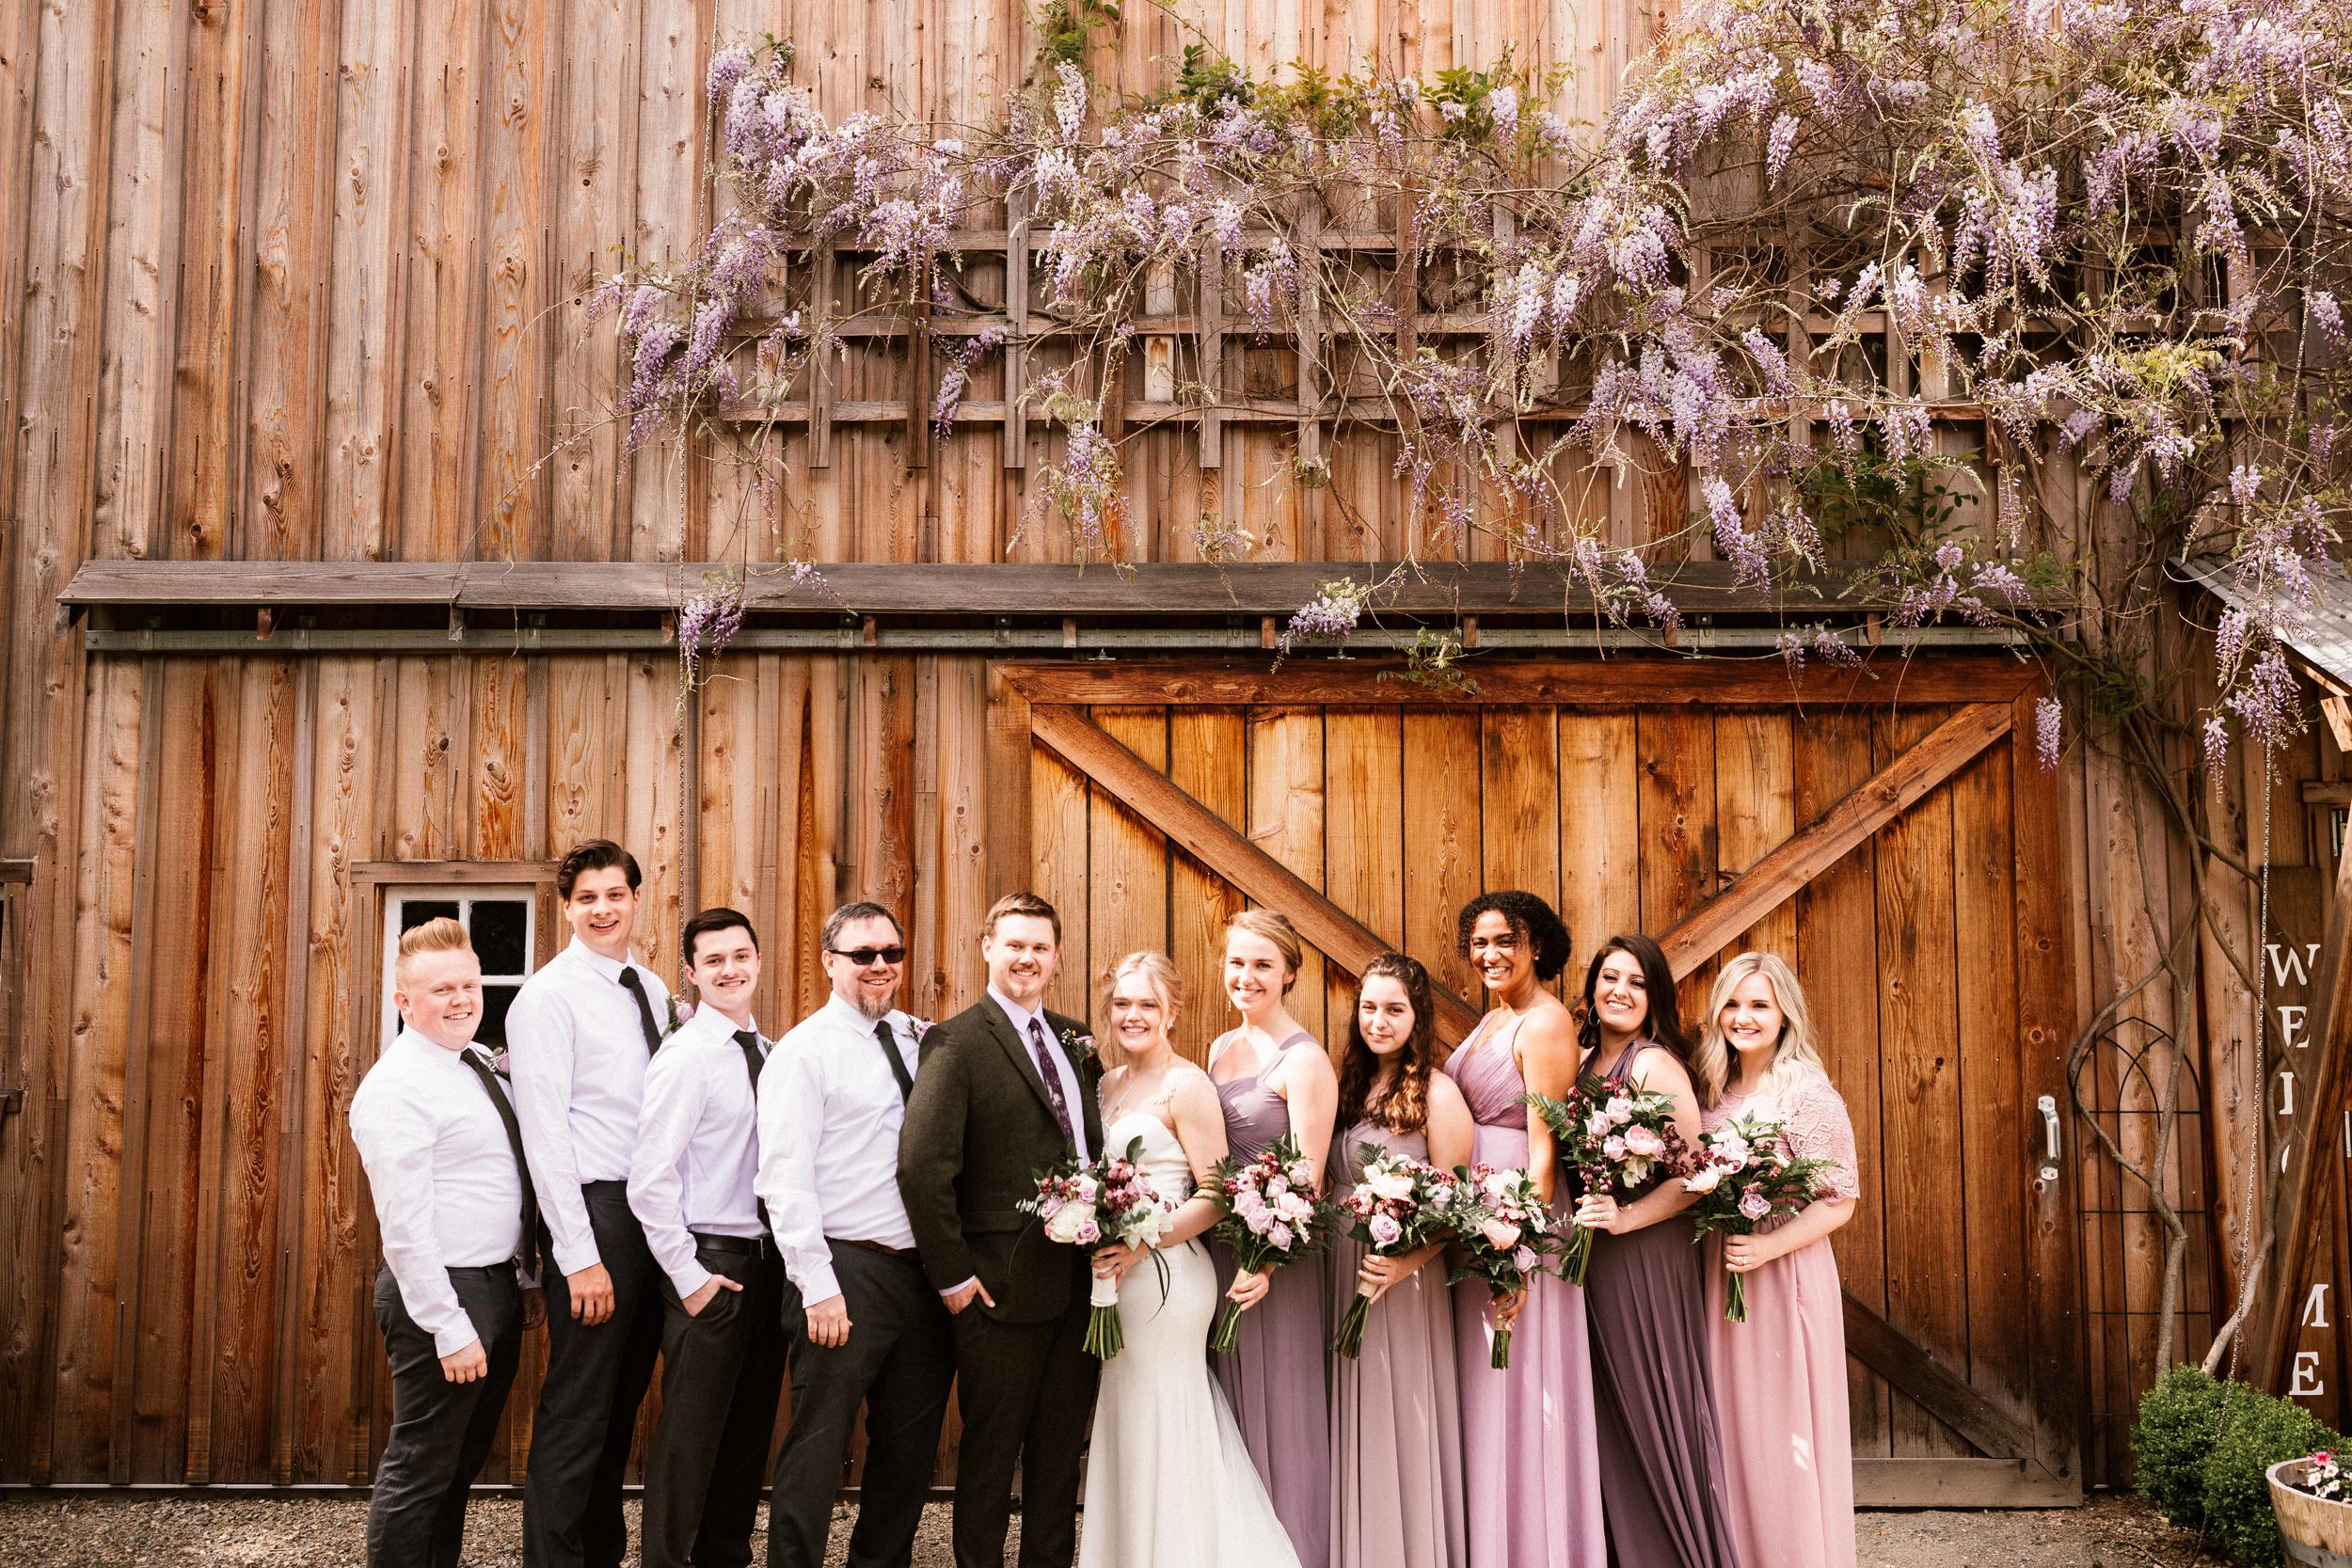 everson-barn-wedding-67.jpg